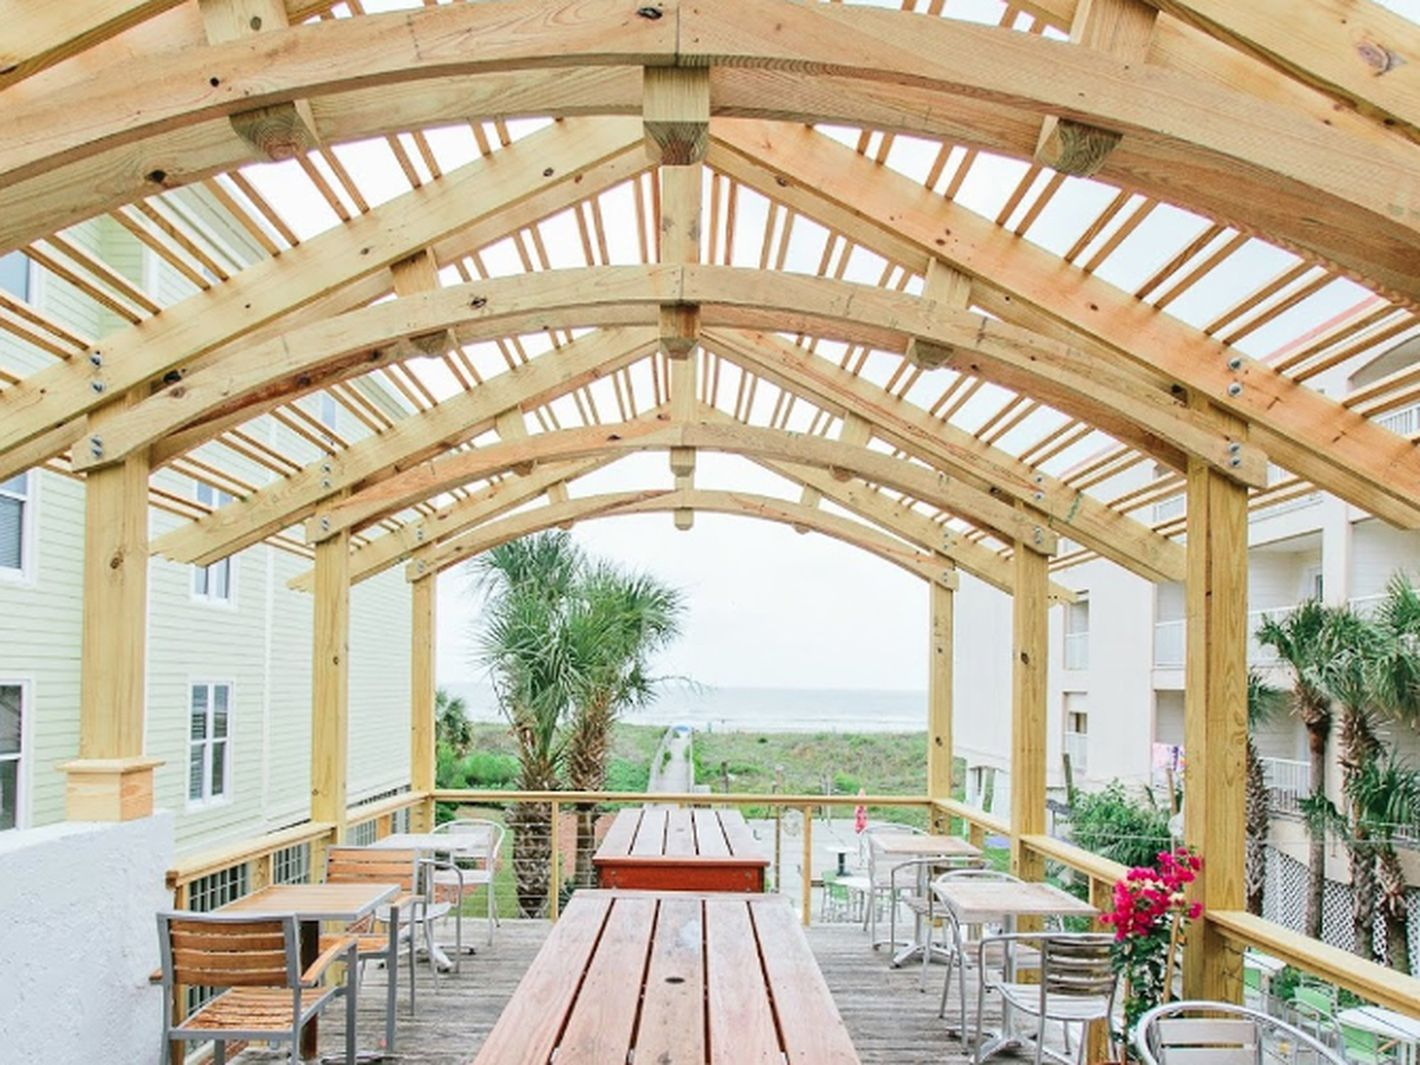 18 Charleston Bars Or Restaurants With Stunning Views